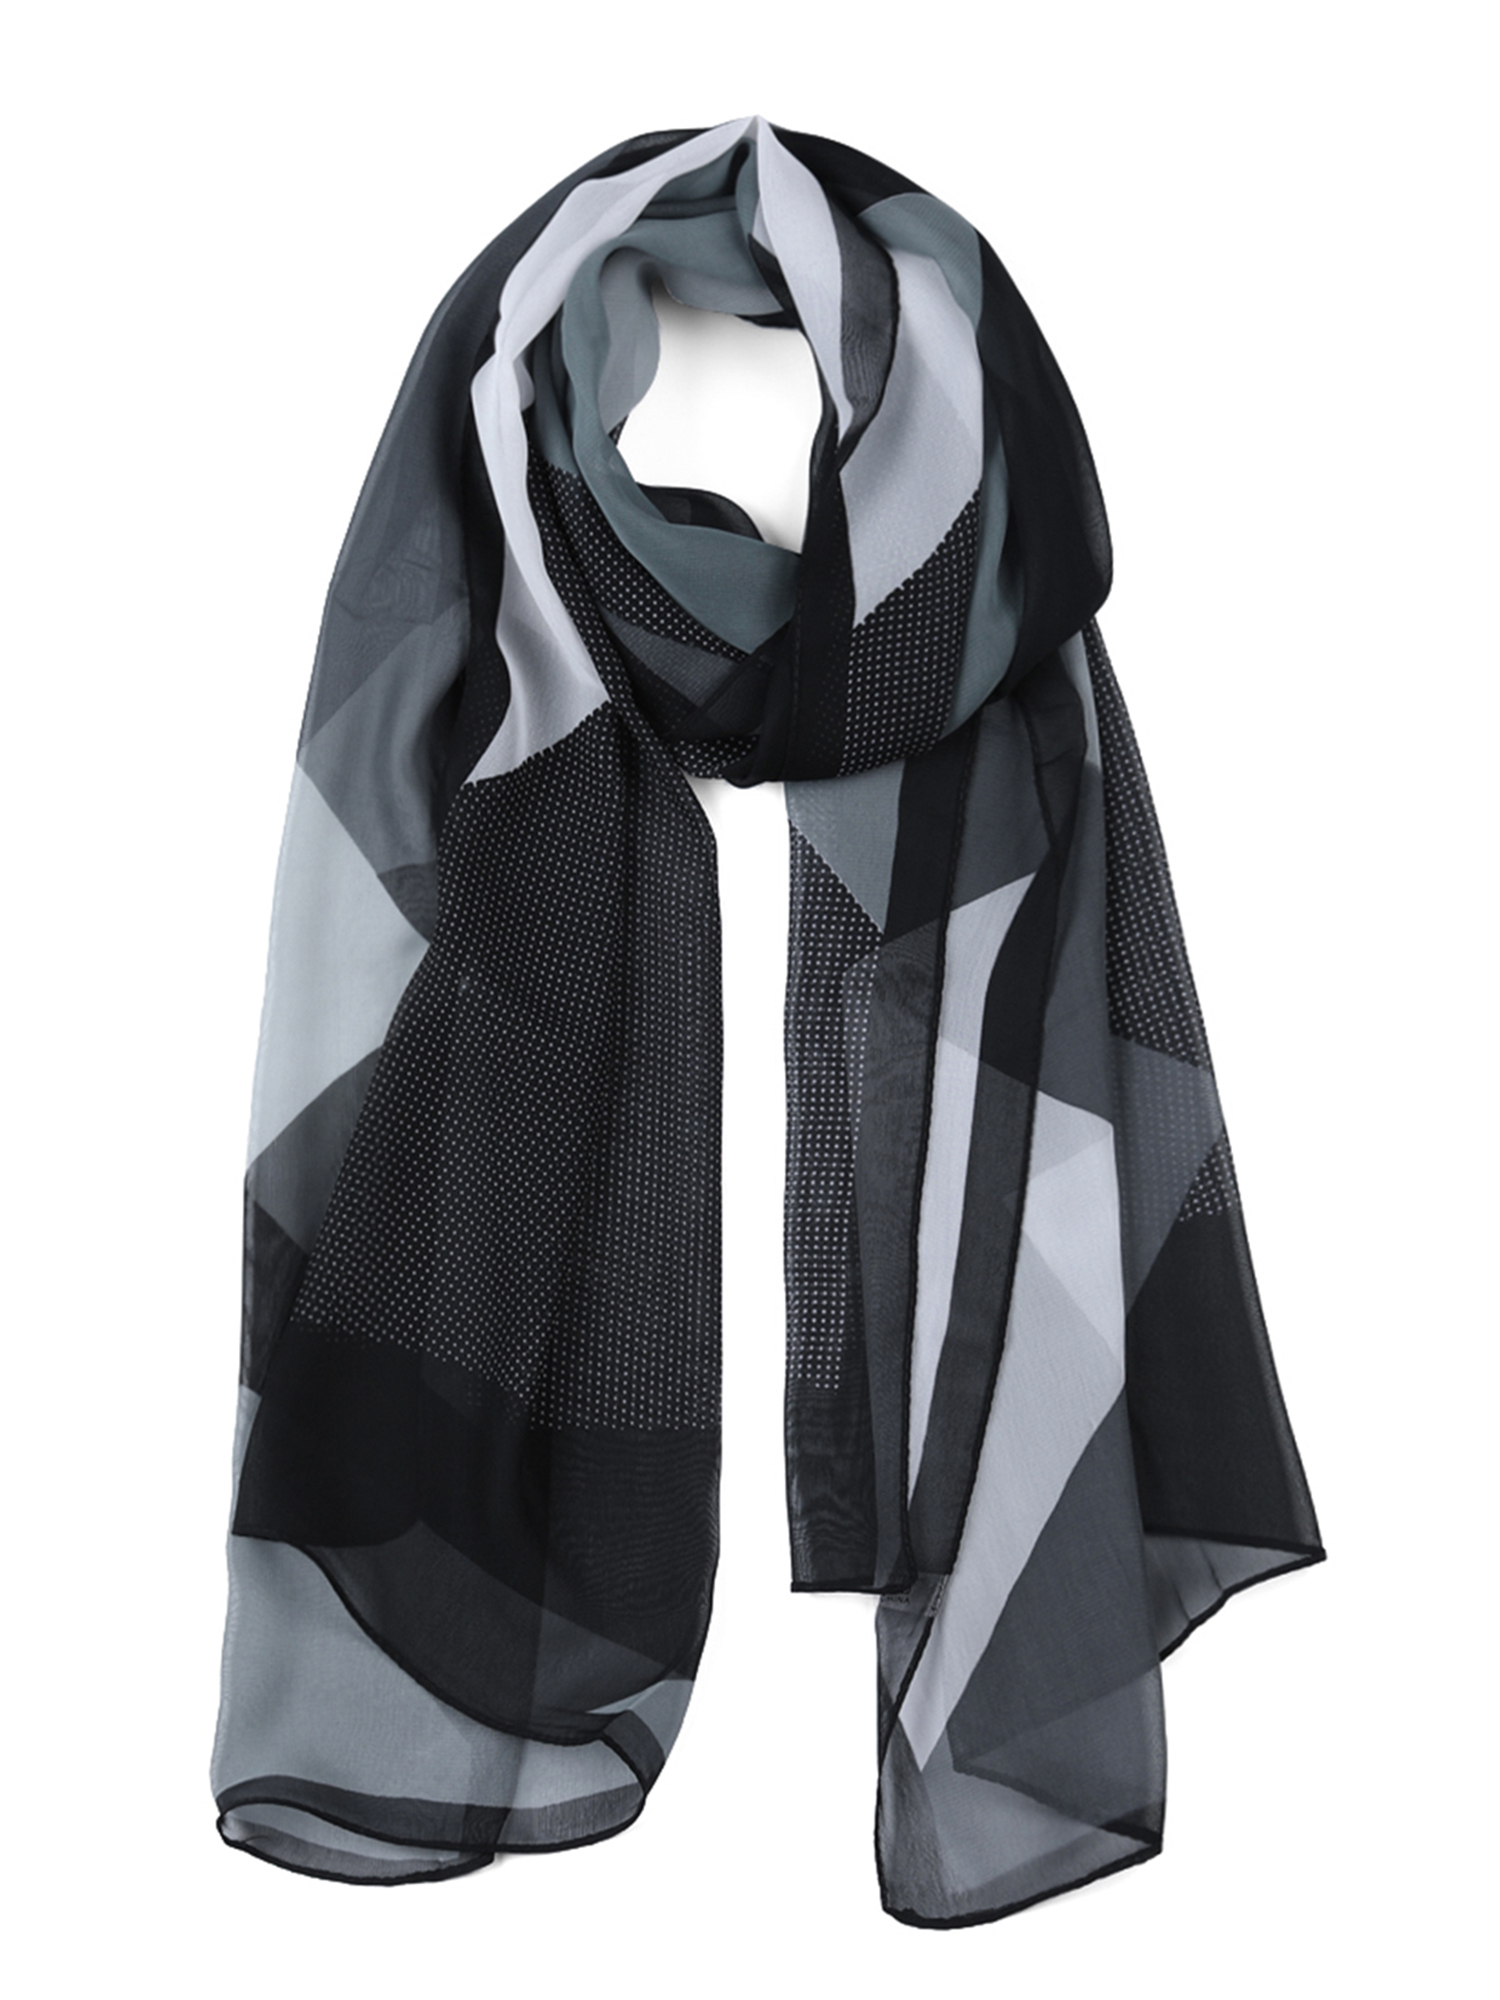 Soft Long light weight  Scarf in pale grey with small black birds